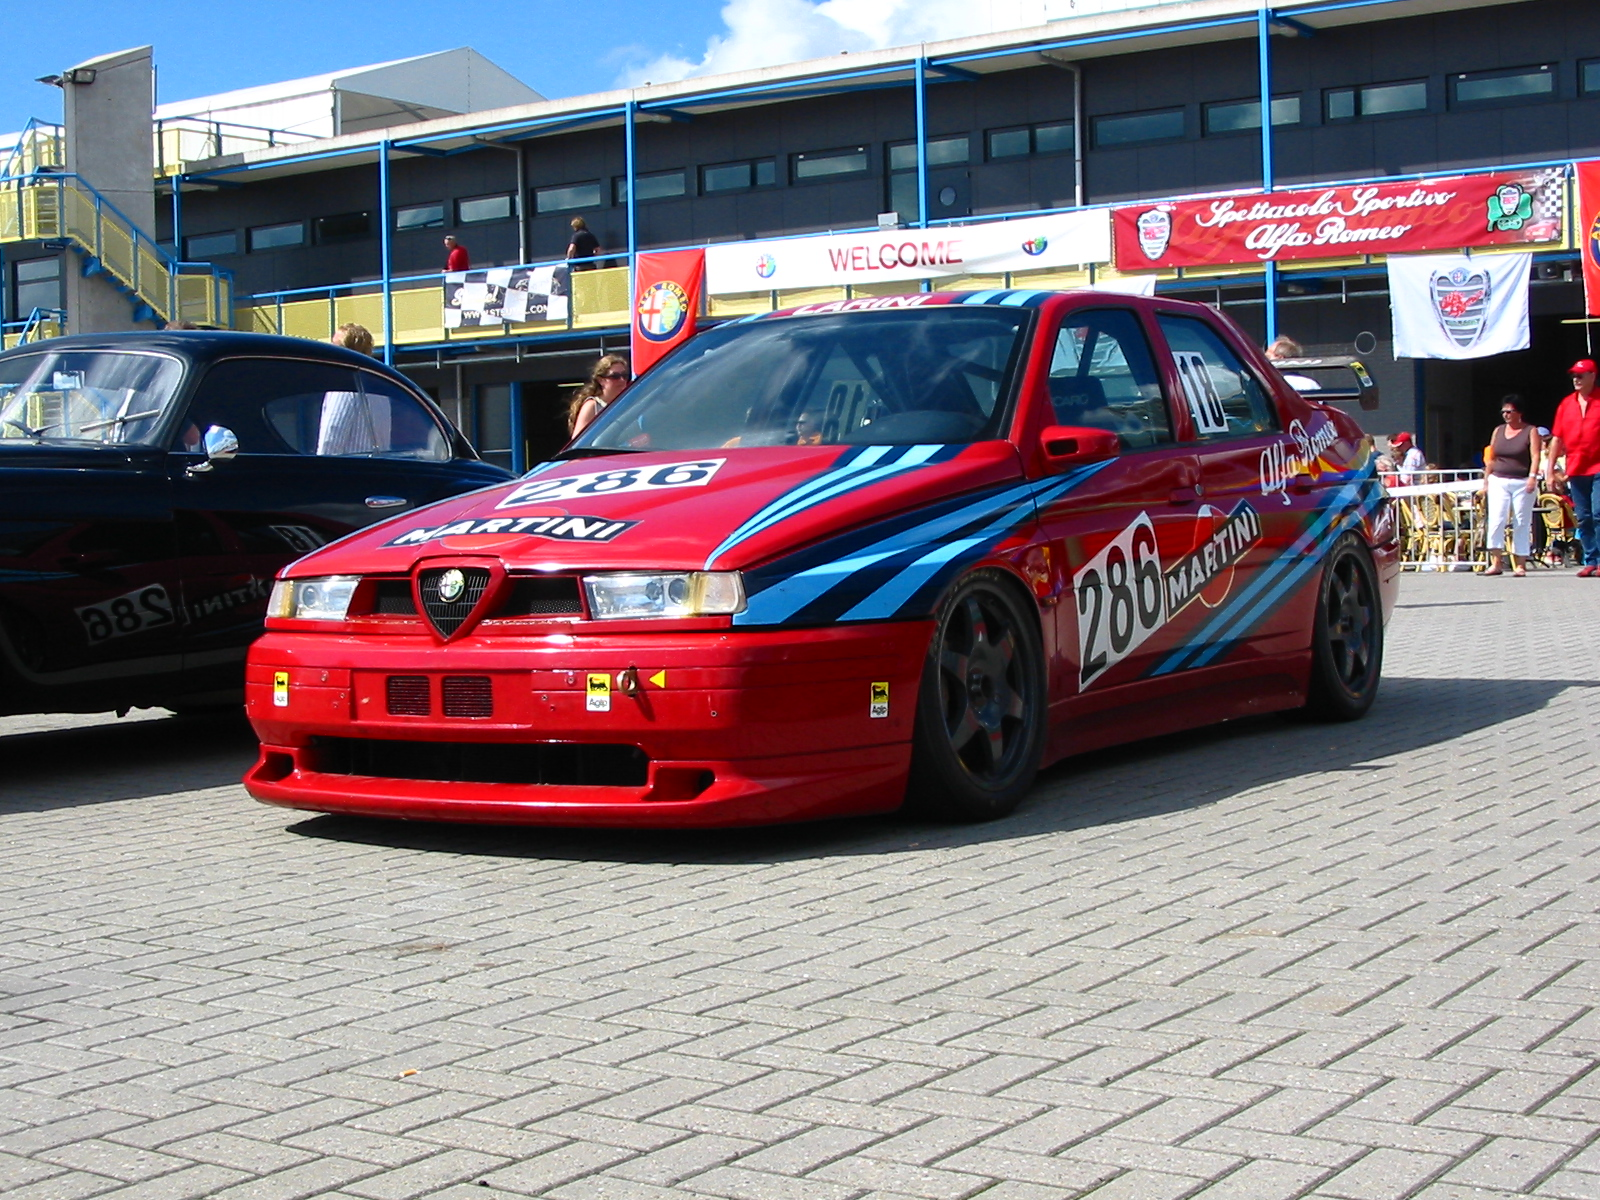 Alfa romeo 155 v6 ti dtm for sale